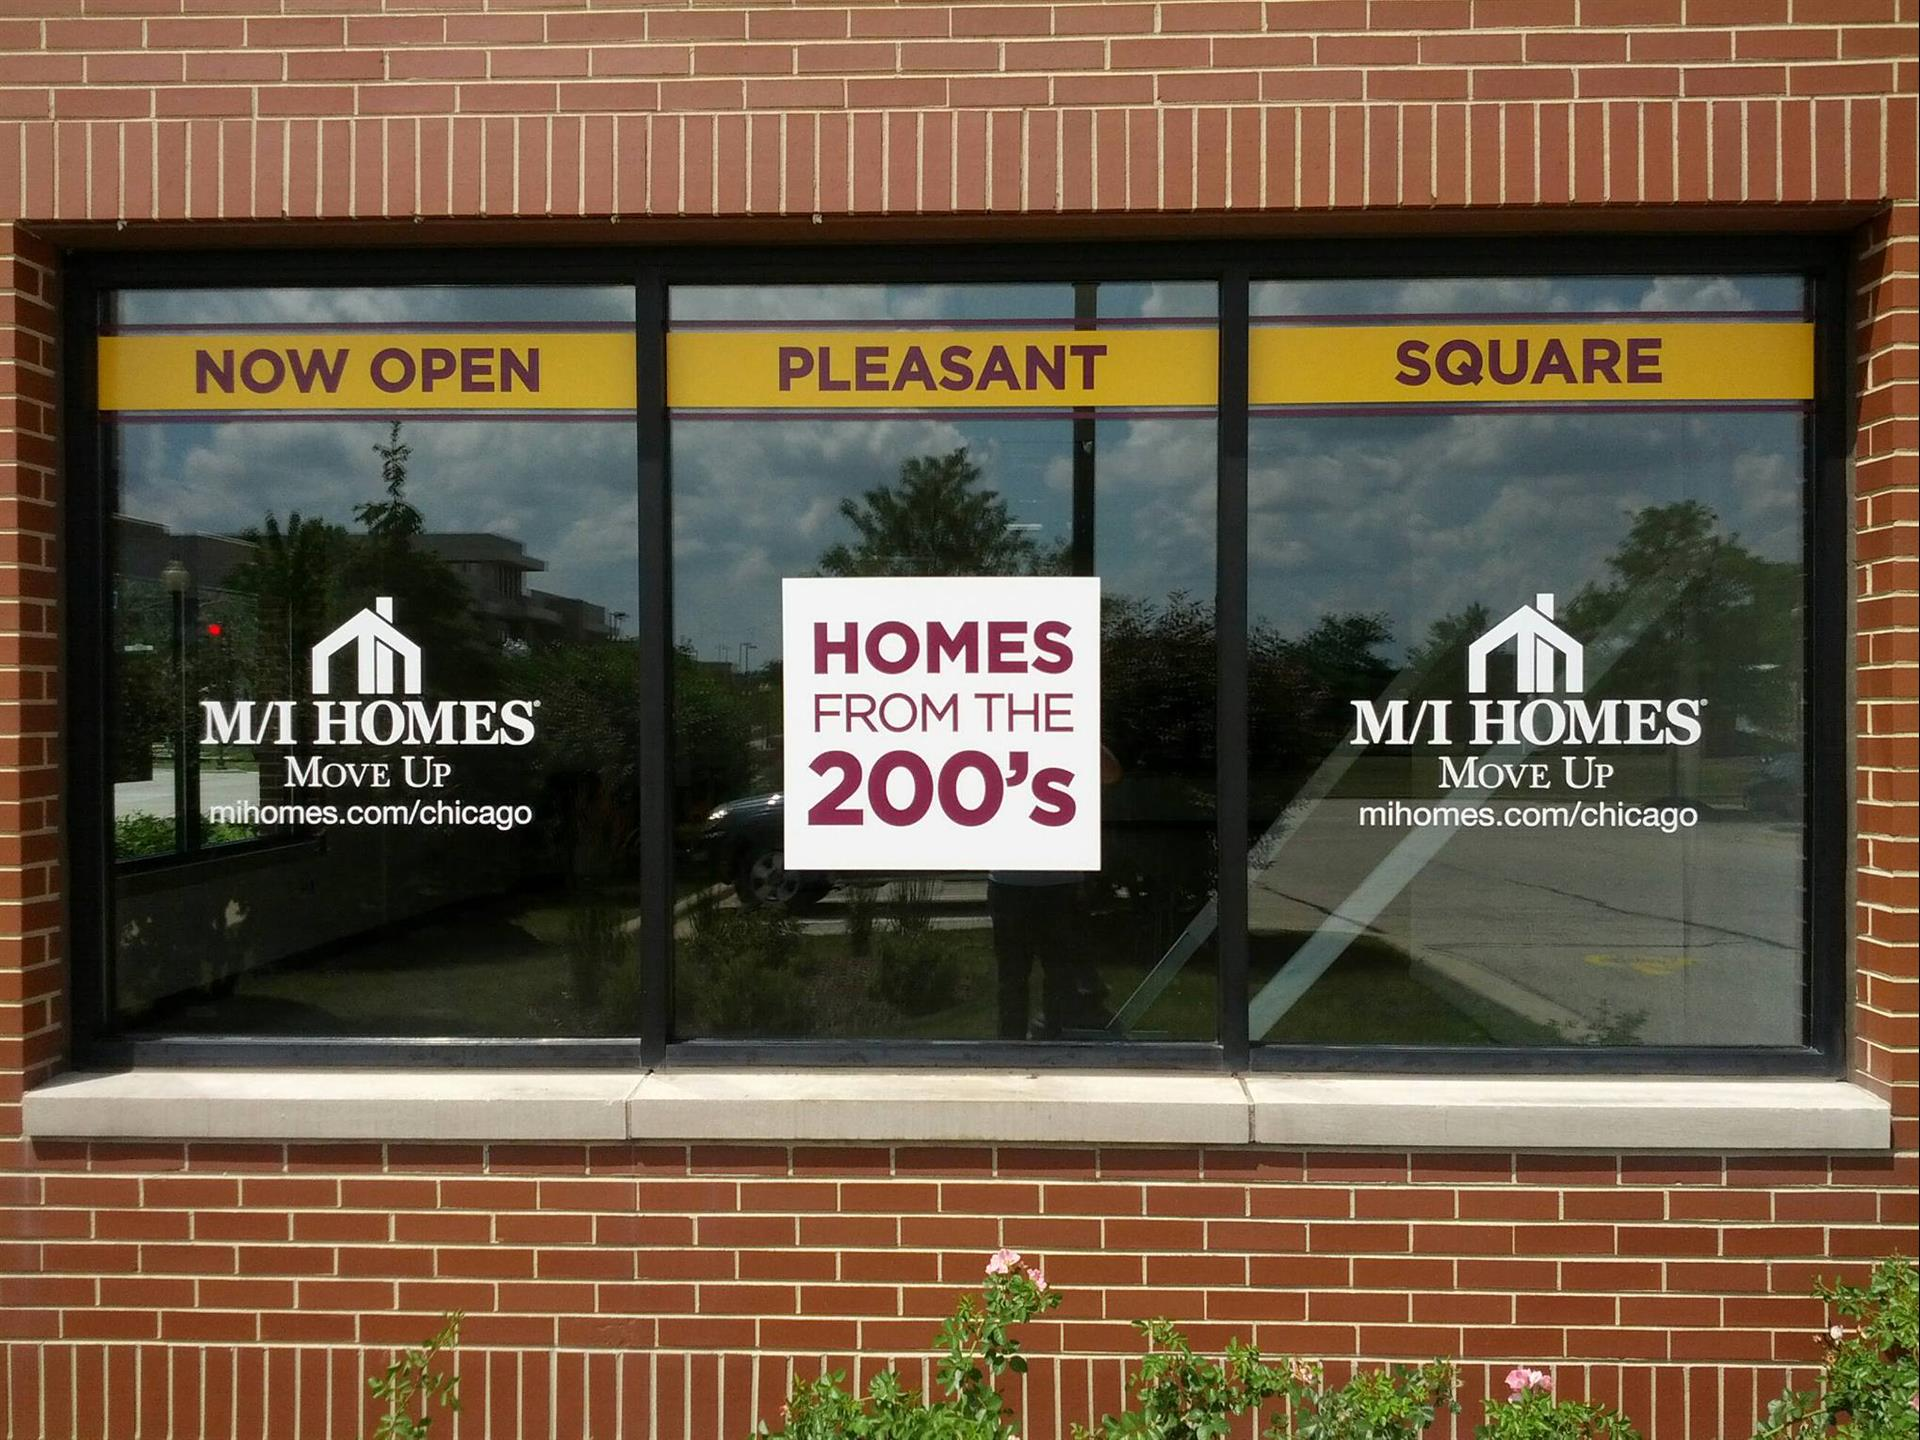 M/I Homes Storefront Graphic